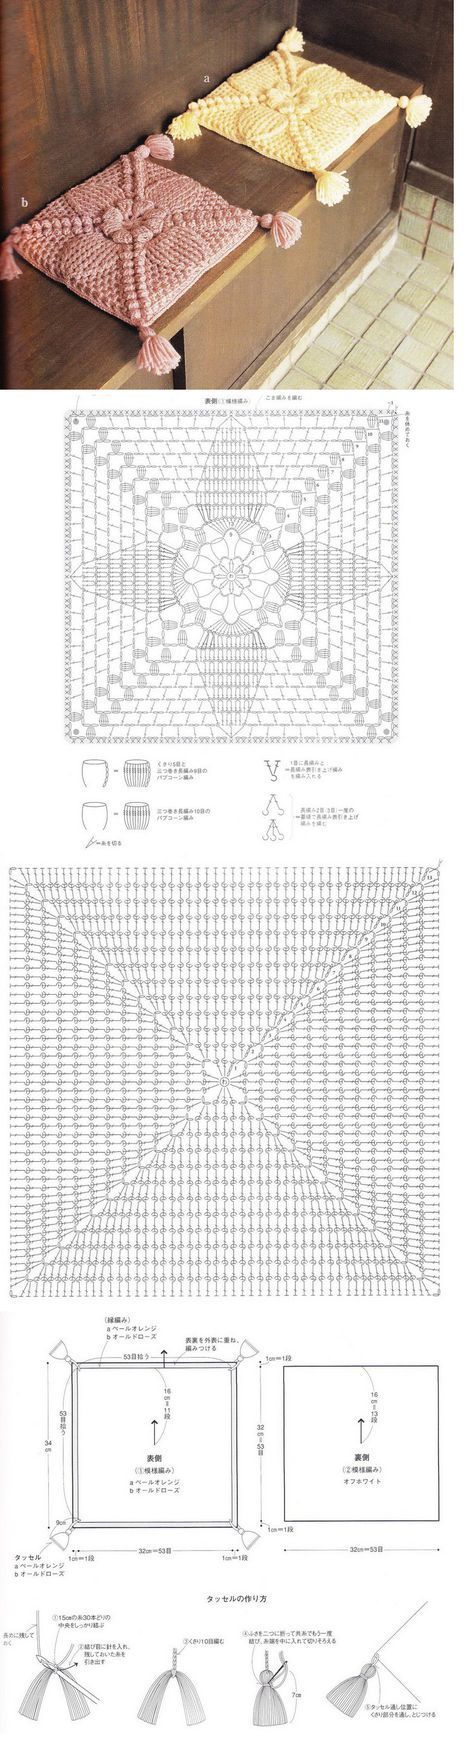 Crochet Pillow Diagram Cushions 43 Ideas #pillowedgingcrochet